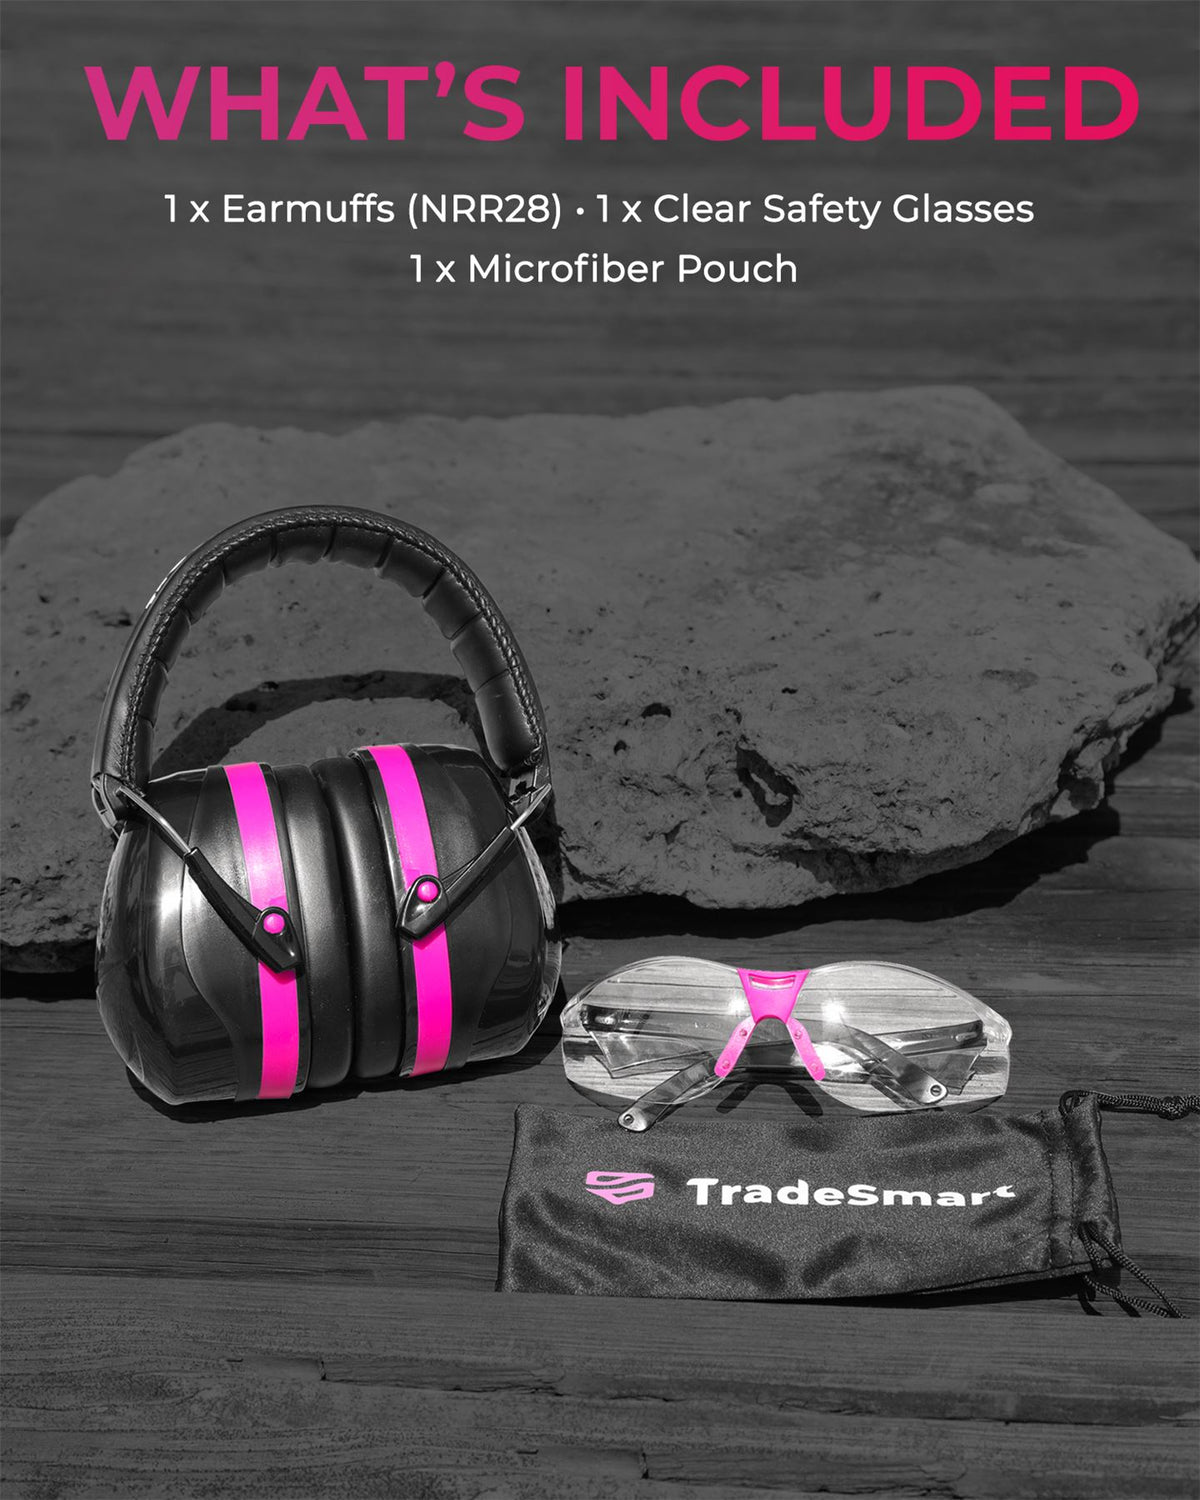 ESSENTIALS - Earmuffs & Clear, Indoor & Tinted Safety Glasses